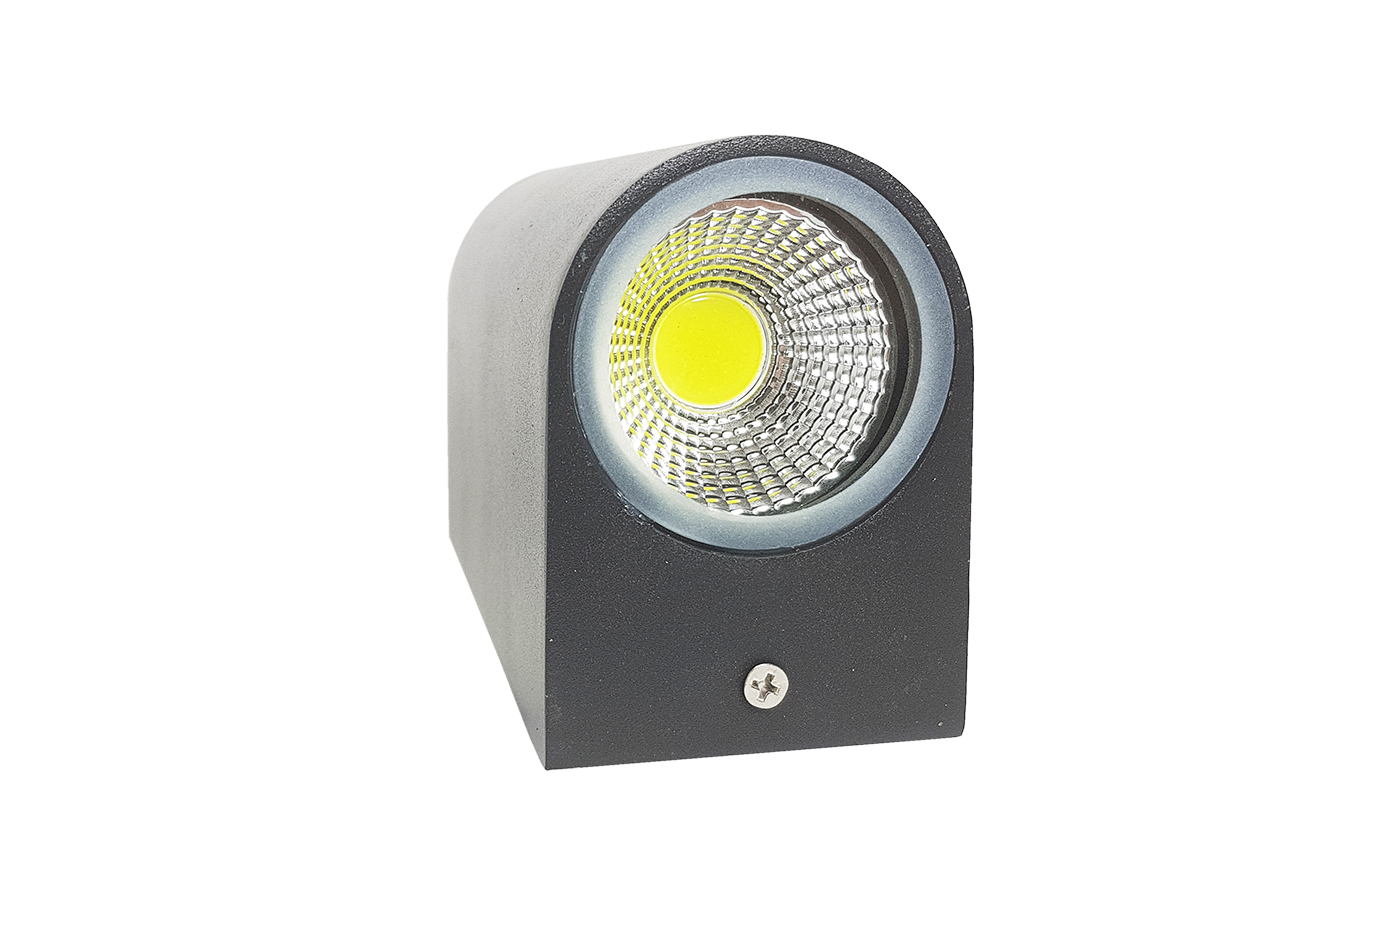 Plafoniere Esterne A Led Per Camper : Bes 23516 applique beselettronica led 10 w nero